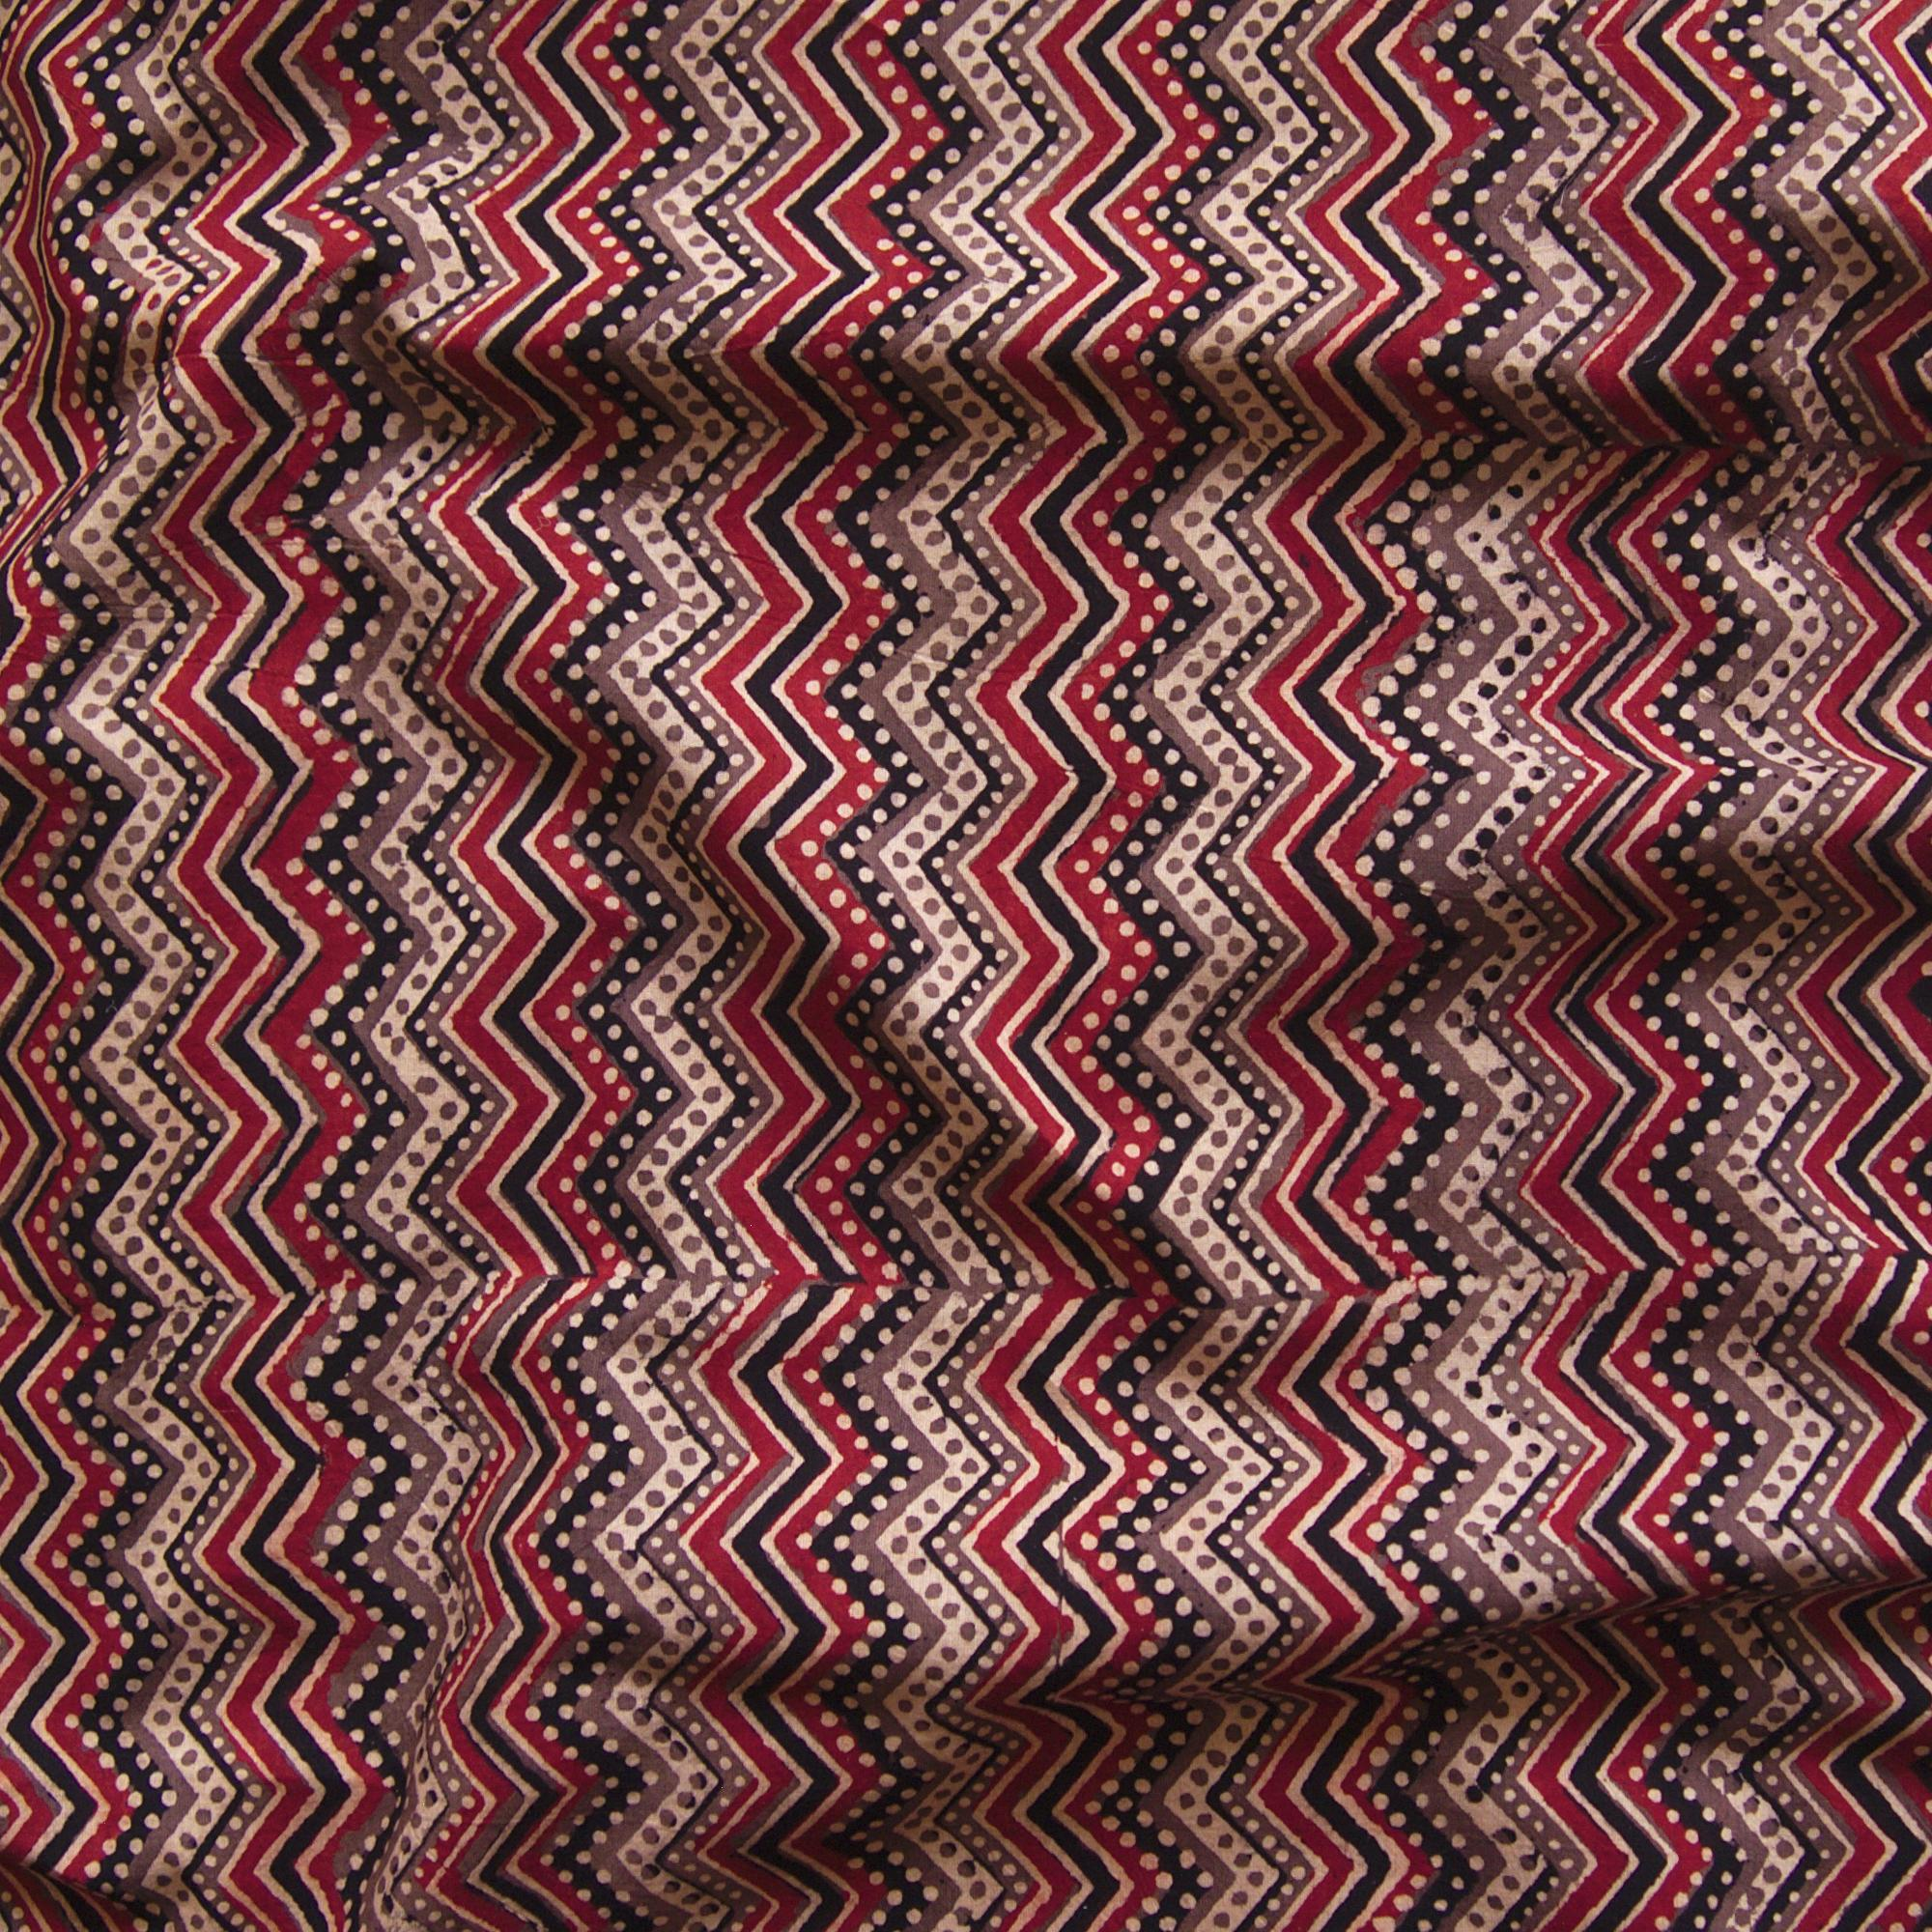 Block Printed Fabric, 100% Cotton, Ajrak Design: Beige Base, Coffee Brown, Iron Black, Madder Red ZigZag. Contrast